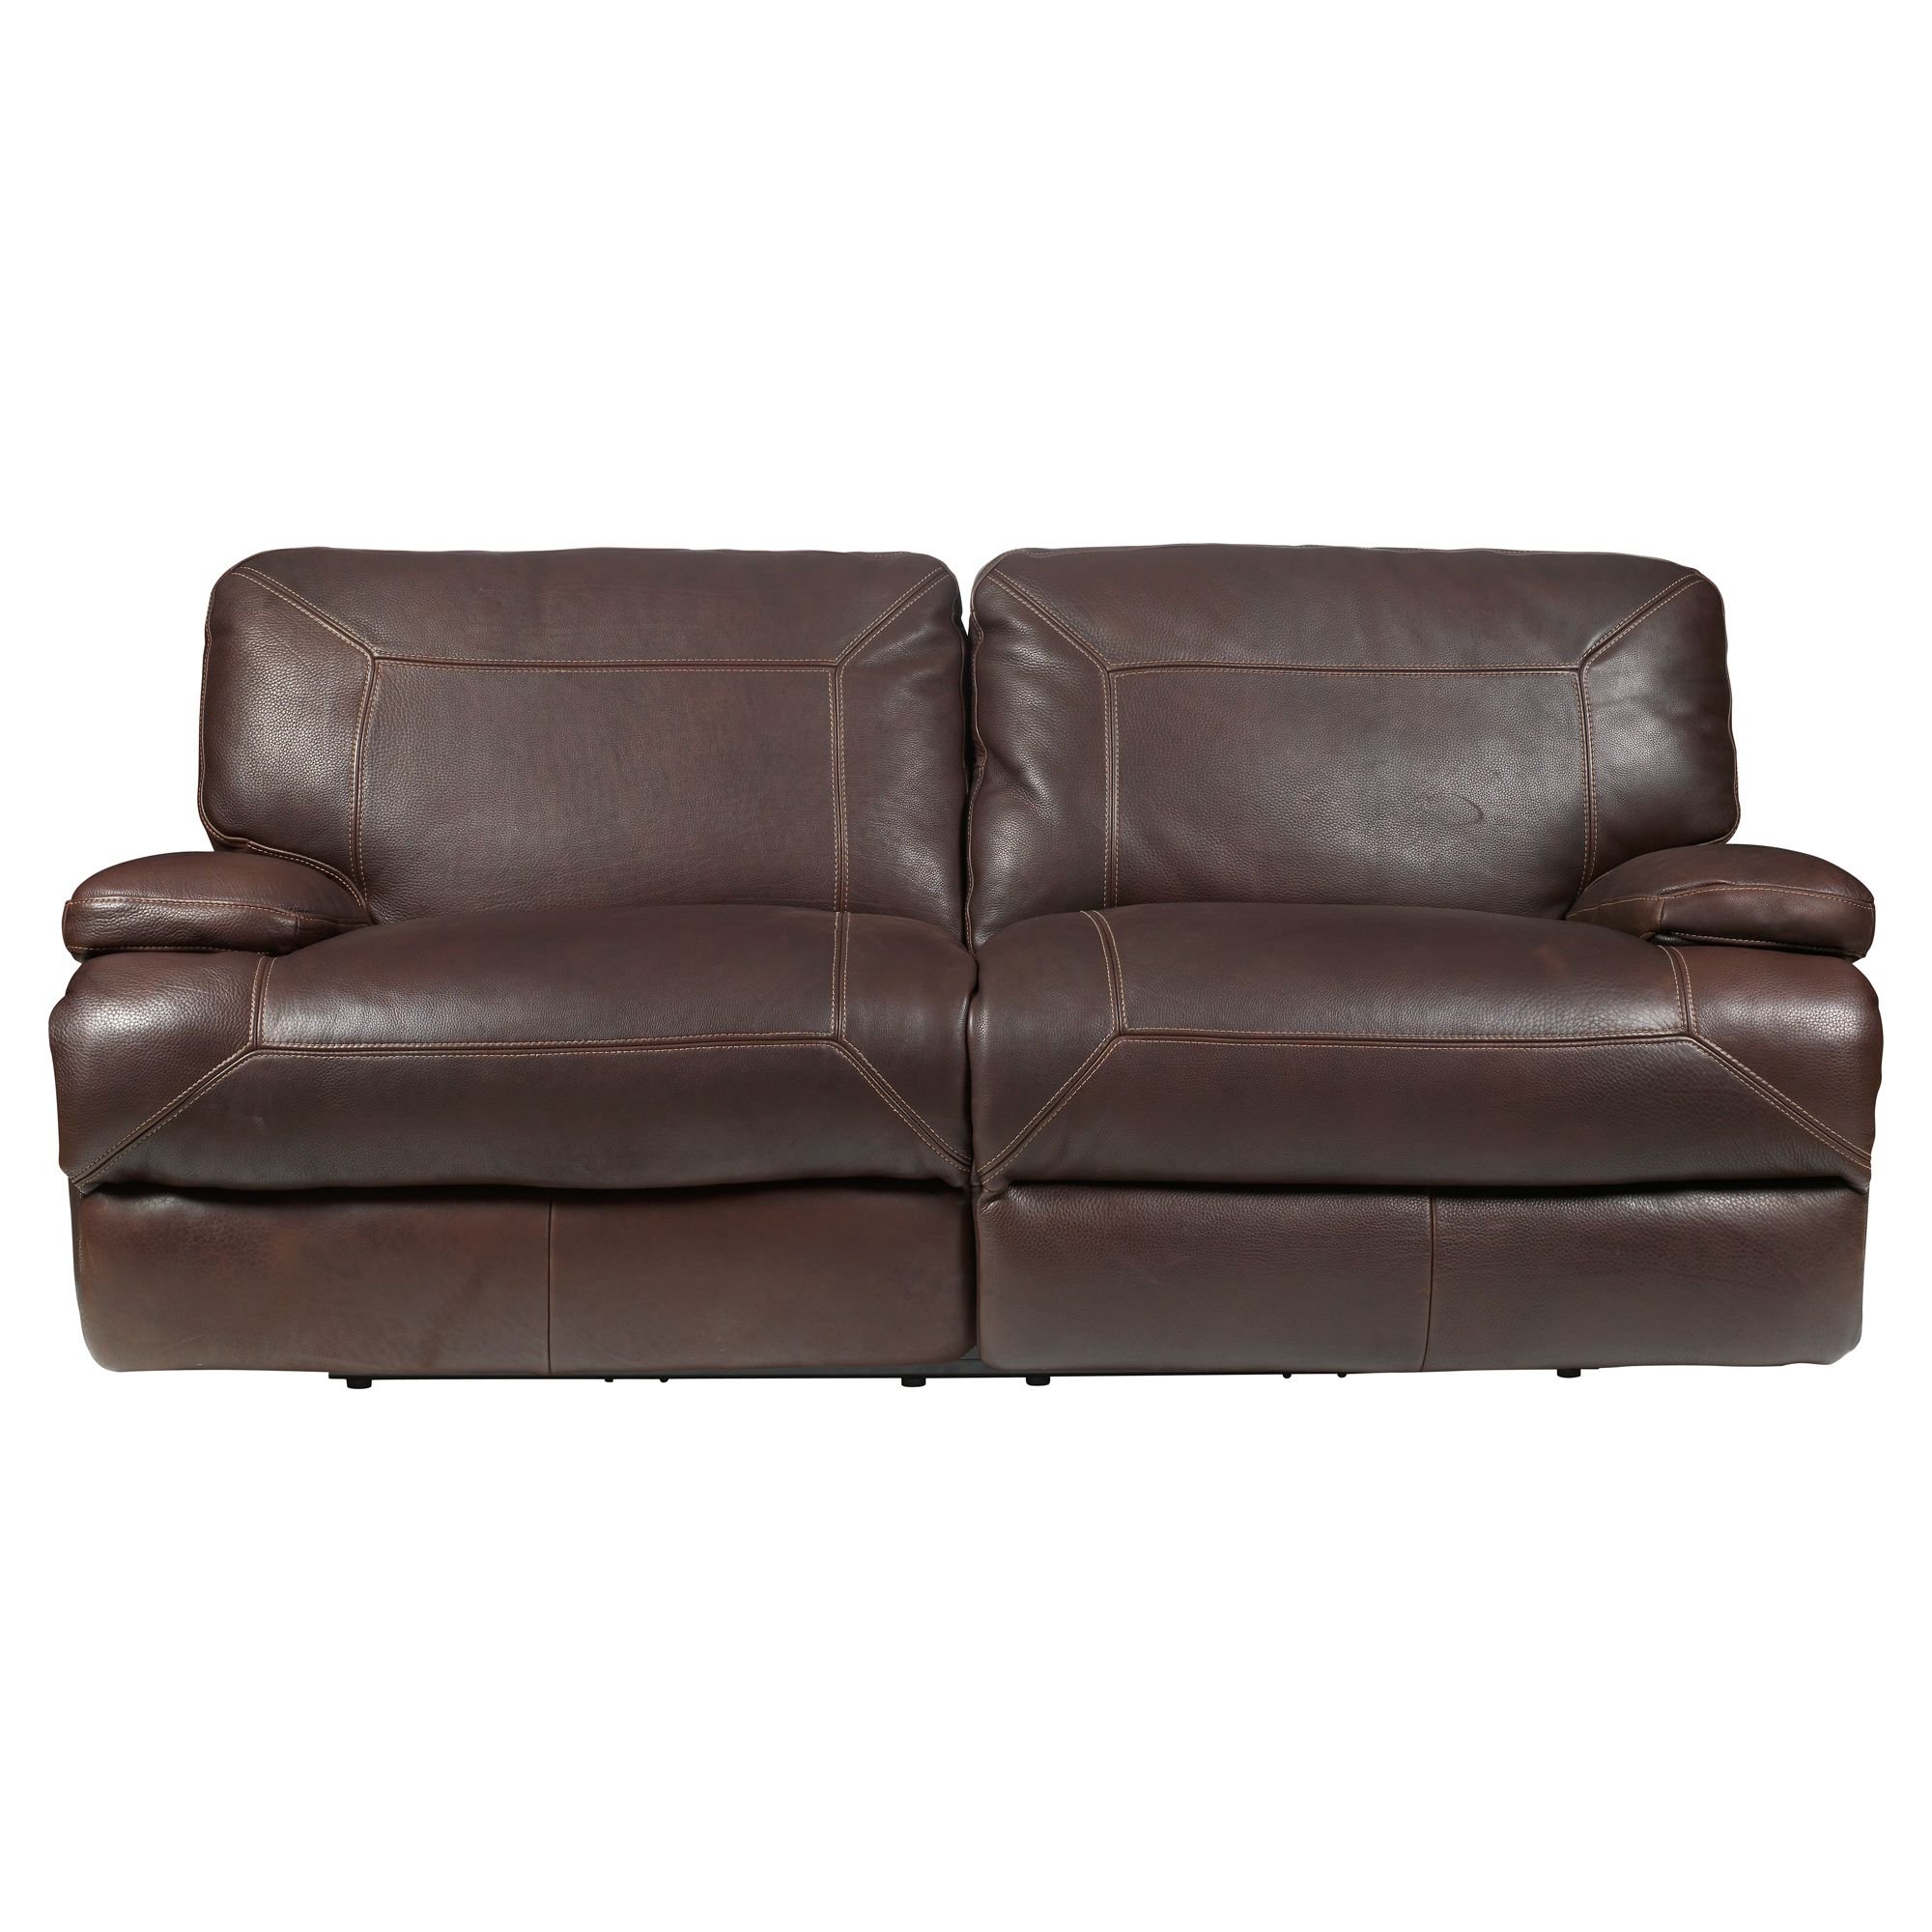 Compare Prices Of Sofas Read Sofa Reviews Buy Online